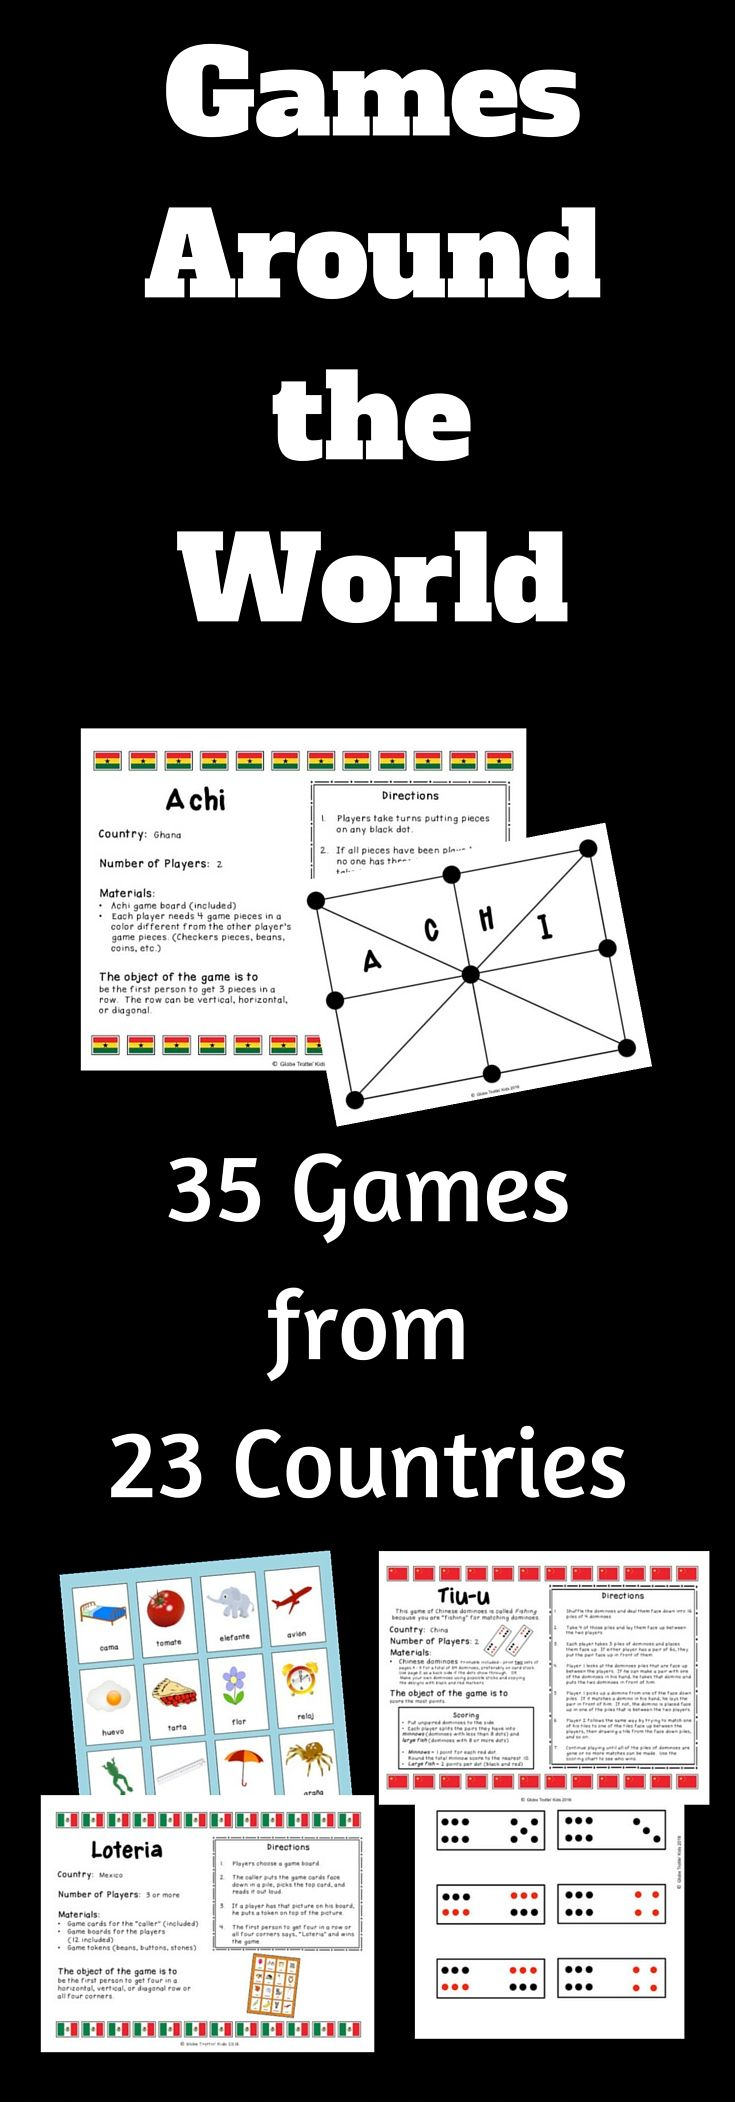 Children all over the world enjoy playing games like tag, hopscotch, tic-tac-toe, and dominoes. However, the names of the games, how they are played, and the materials they use may be different. This product gives children the opportunity to explore and compare a variety of games from 23 countries. A world map and response activities are also included. https://www.teacherspayteachers.com/Product/Games-Around-the-World-2575351